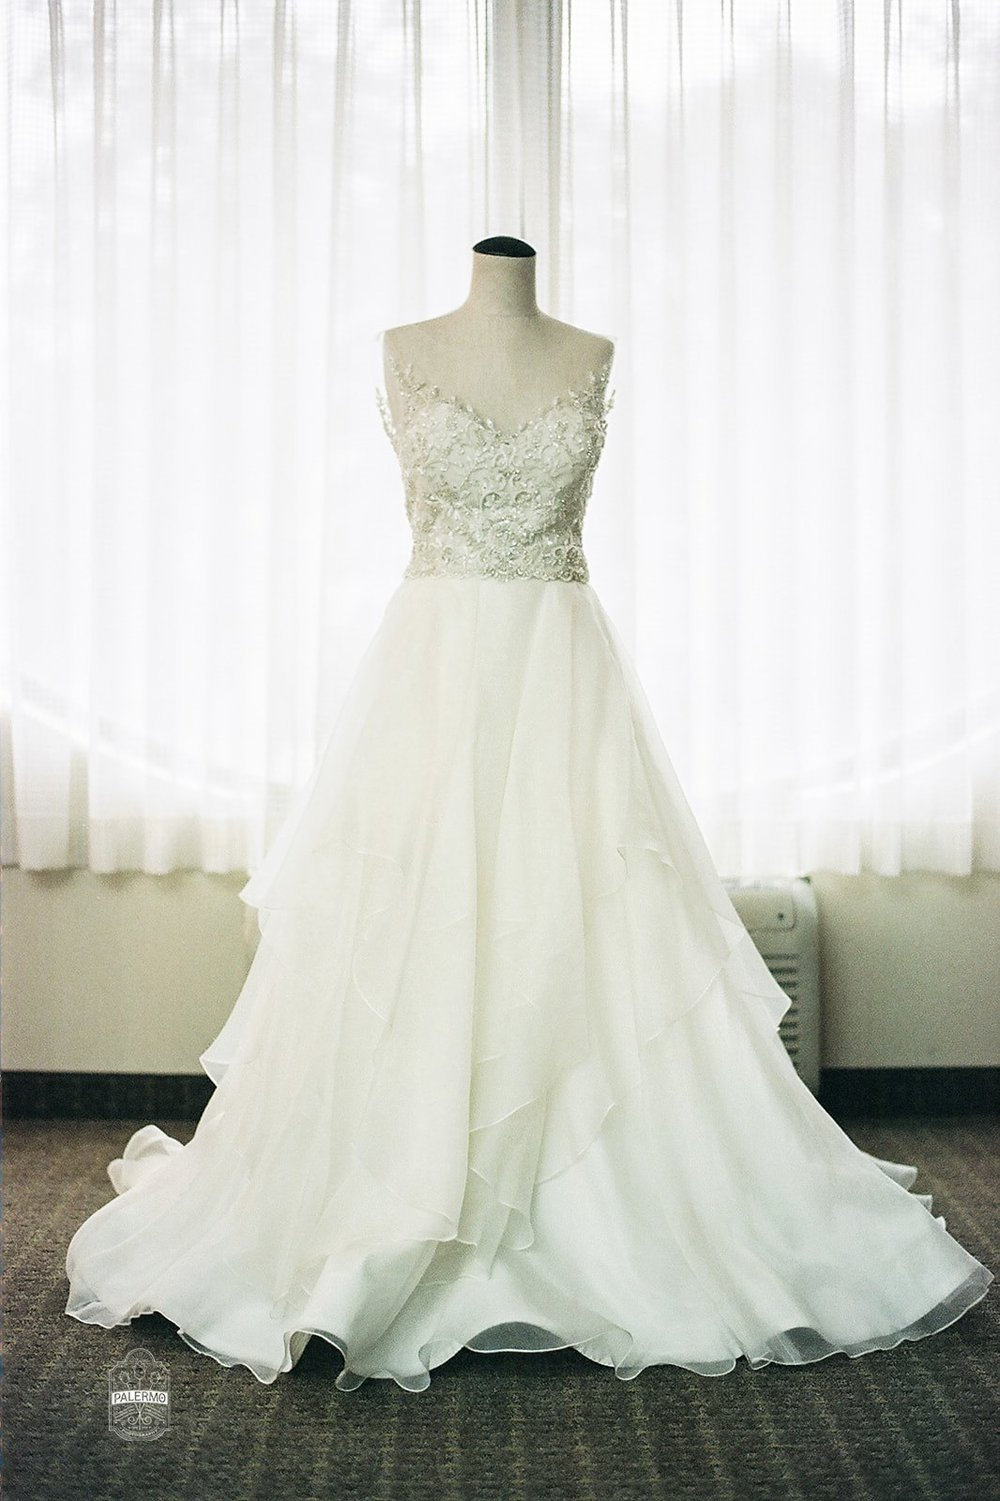 Bride's a-line wedding dress for fall barn wedding in Pittsburgh, PA planned by Exhale Events. Find more wedding inspiration at exhale-events.com!